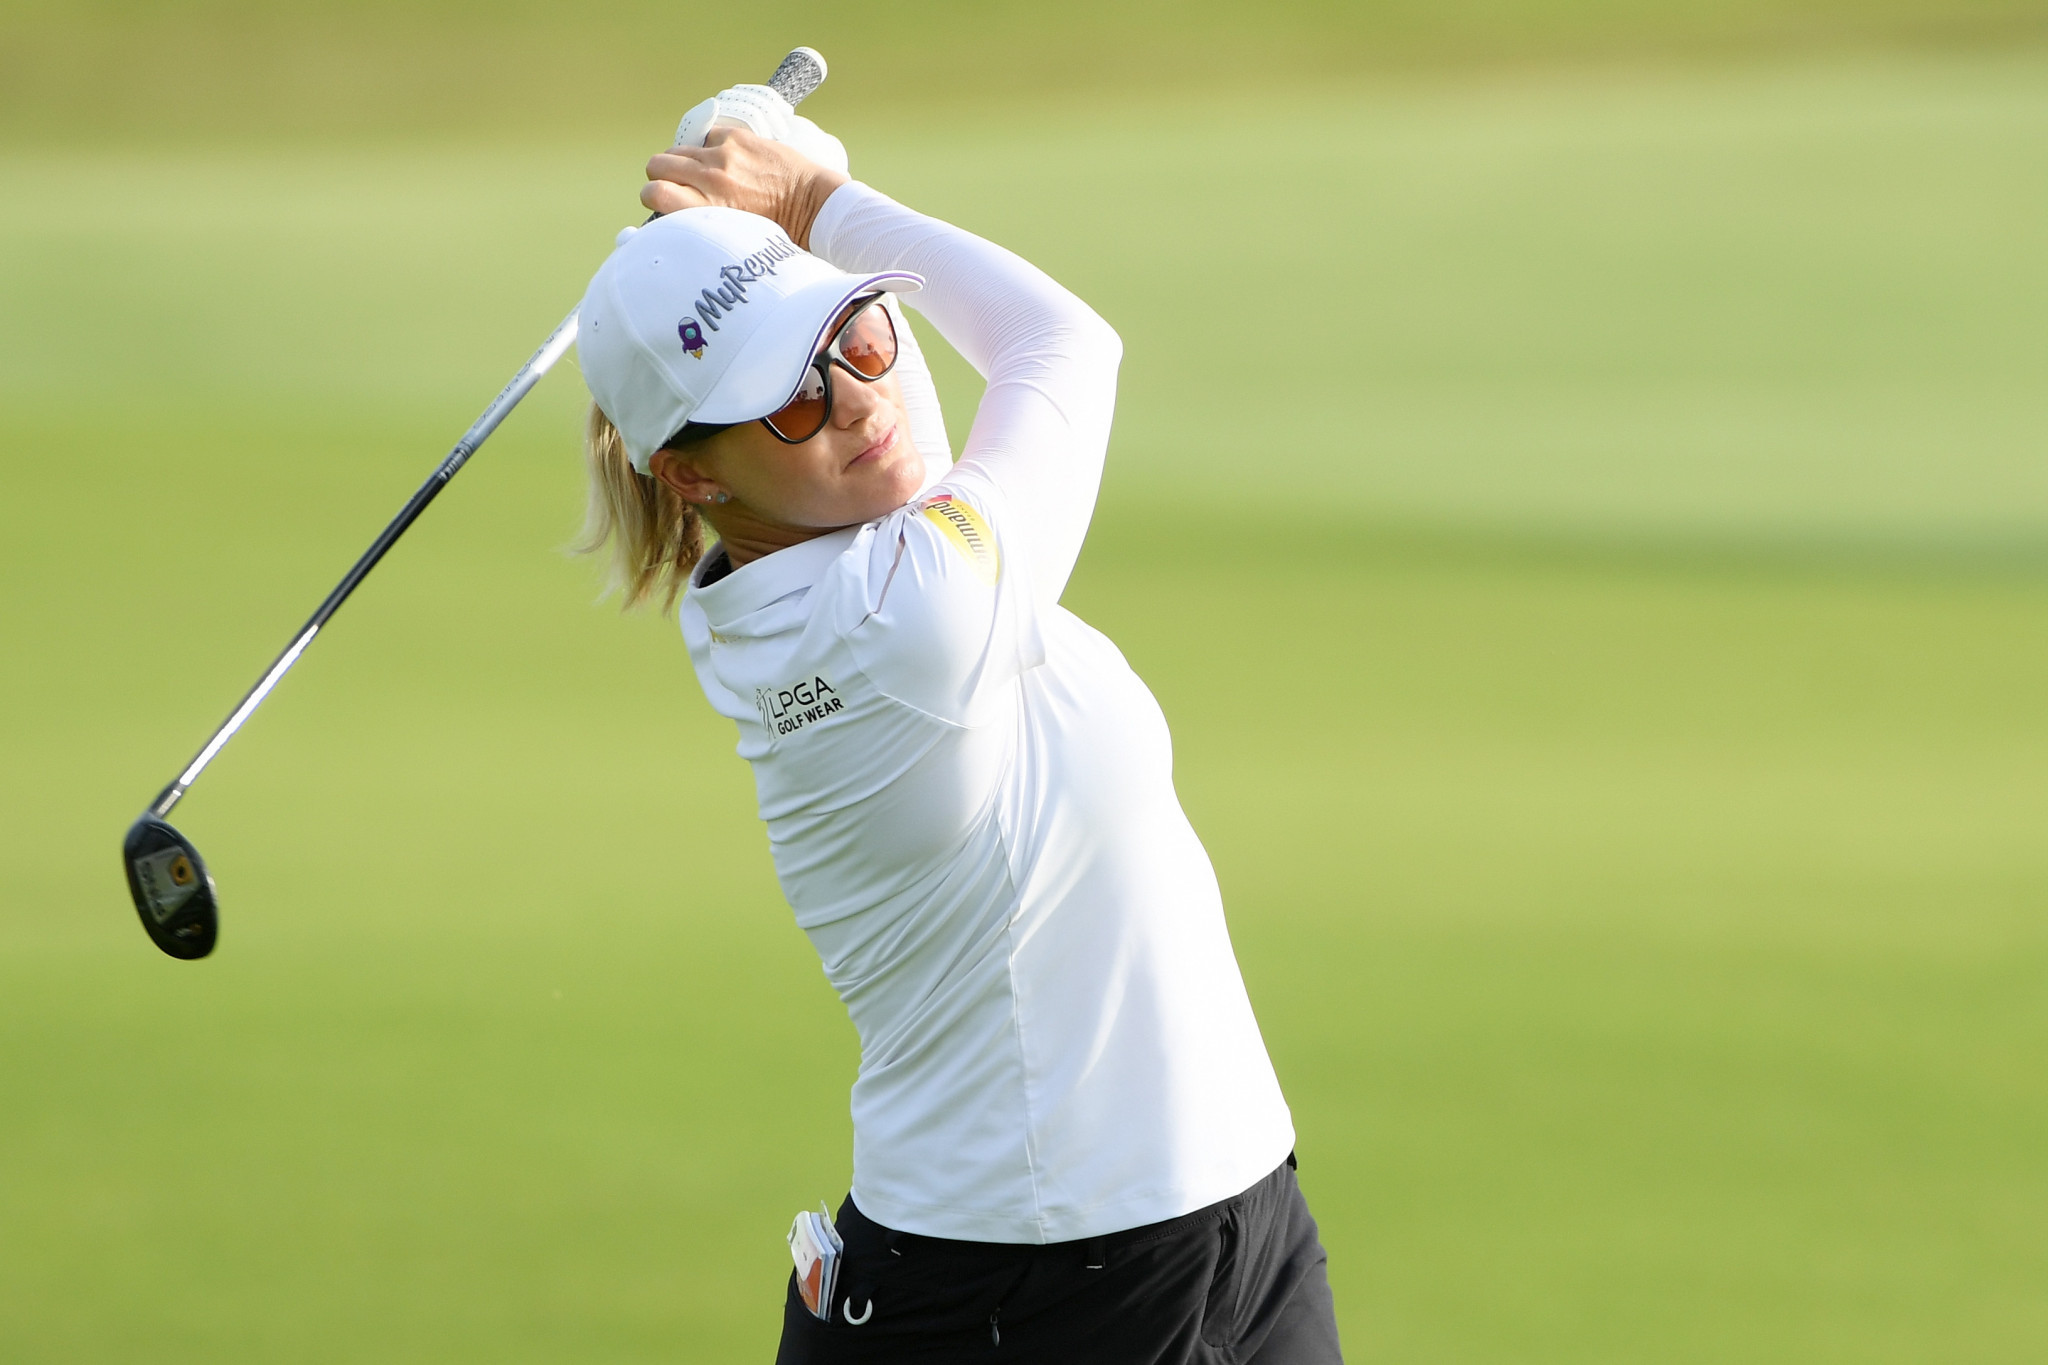 Smith leads after storm affects second round at US Women's Open